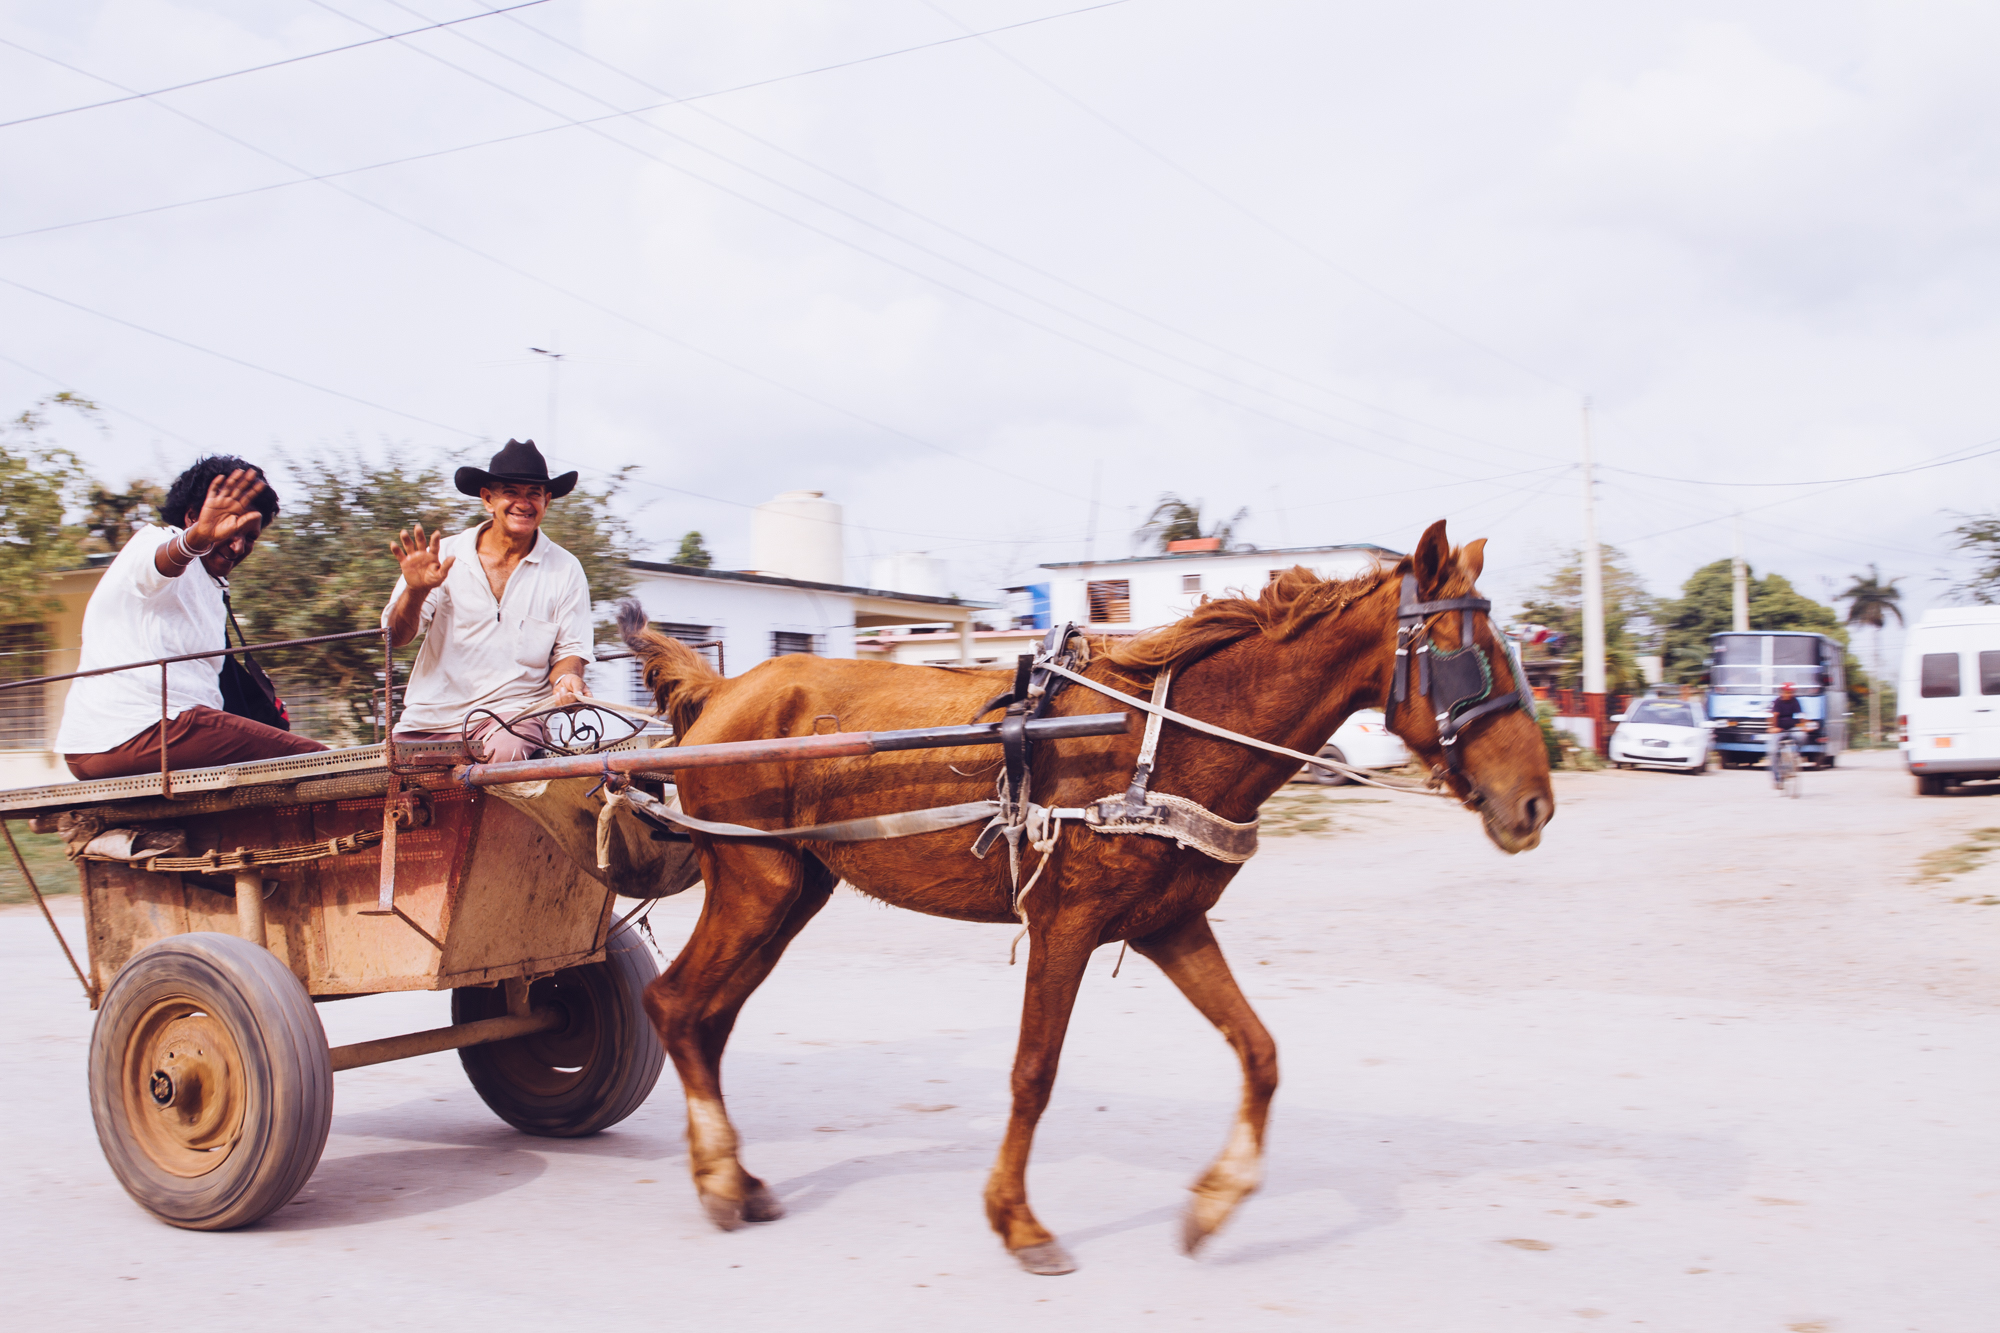 Horse and Carriage in Cuba